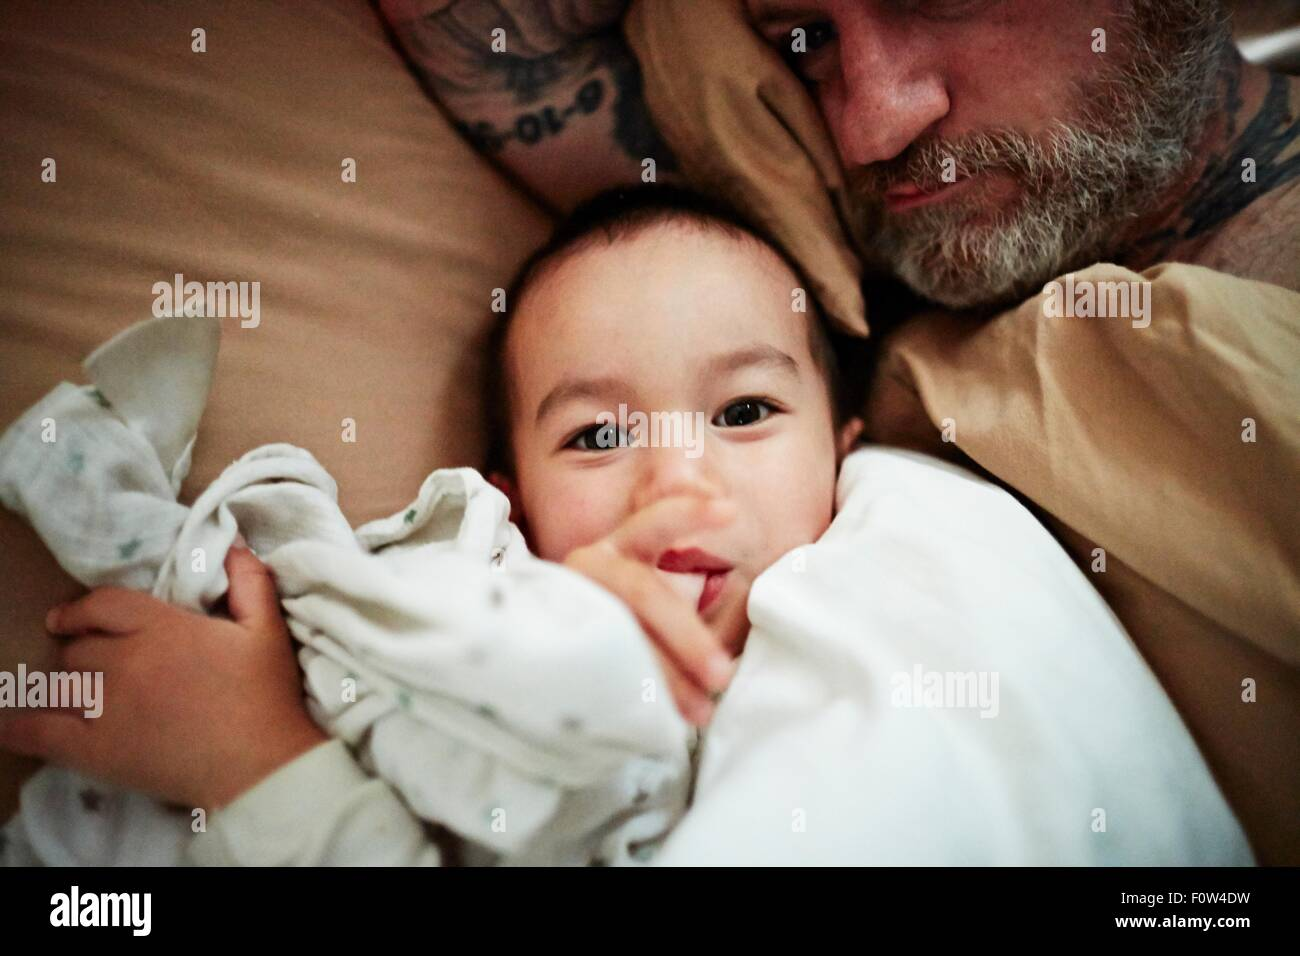 Father and son lying down on bed - Stock Image